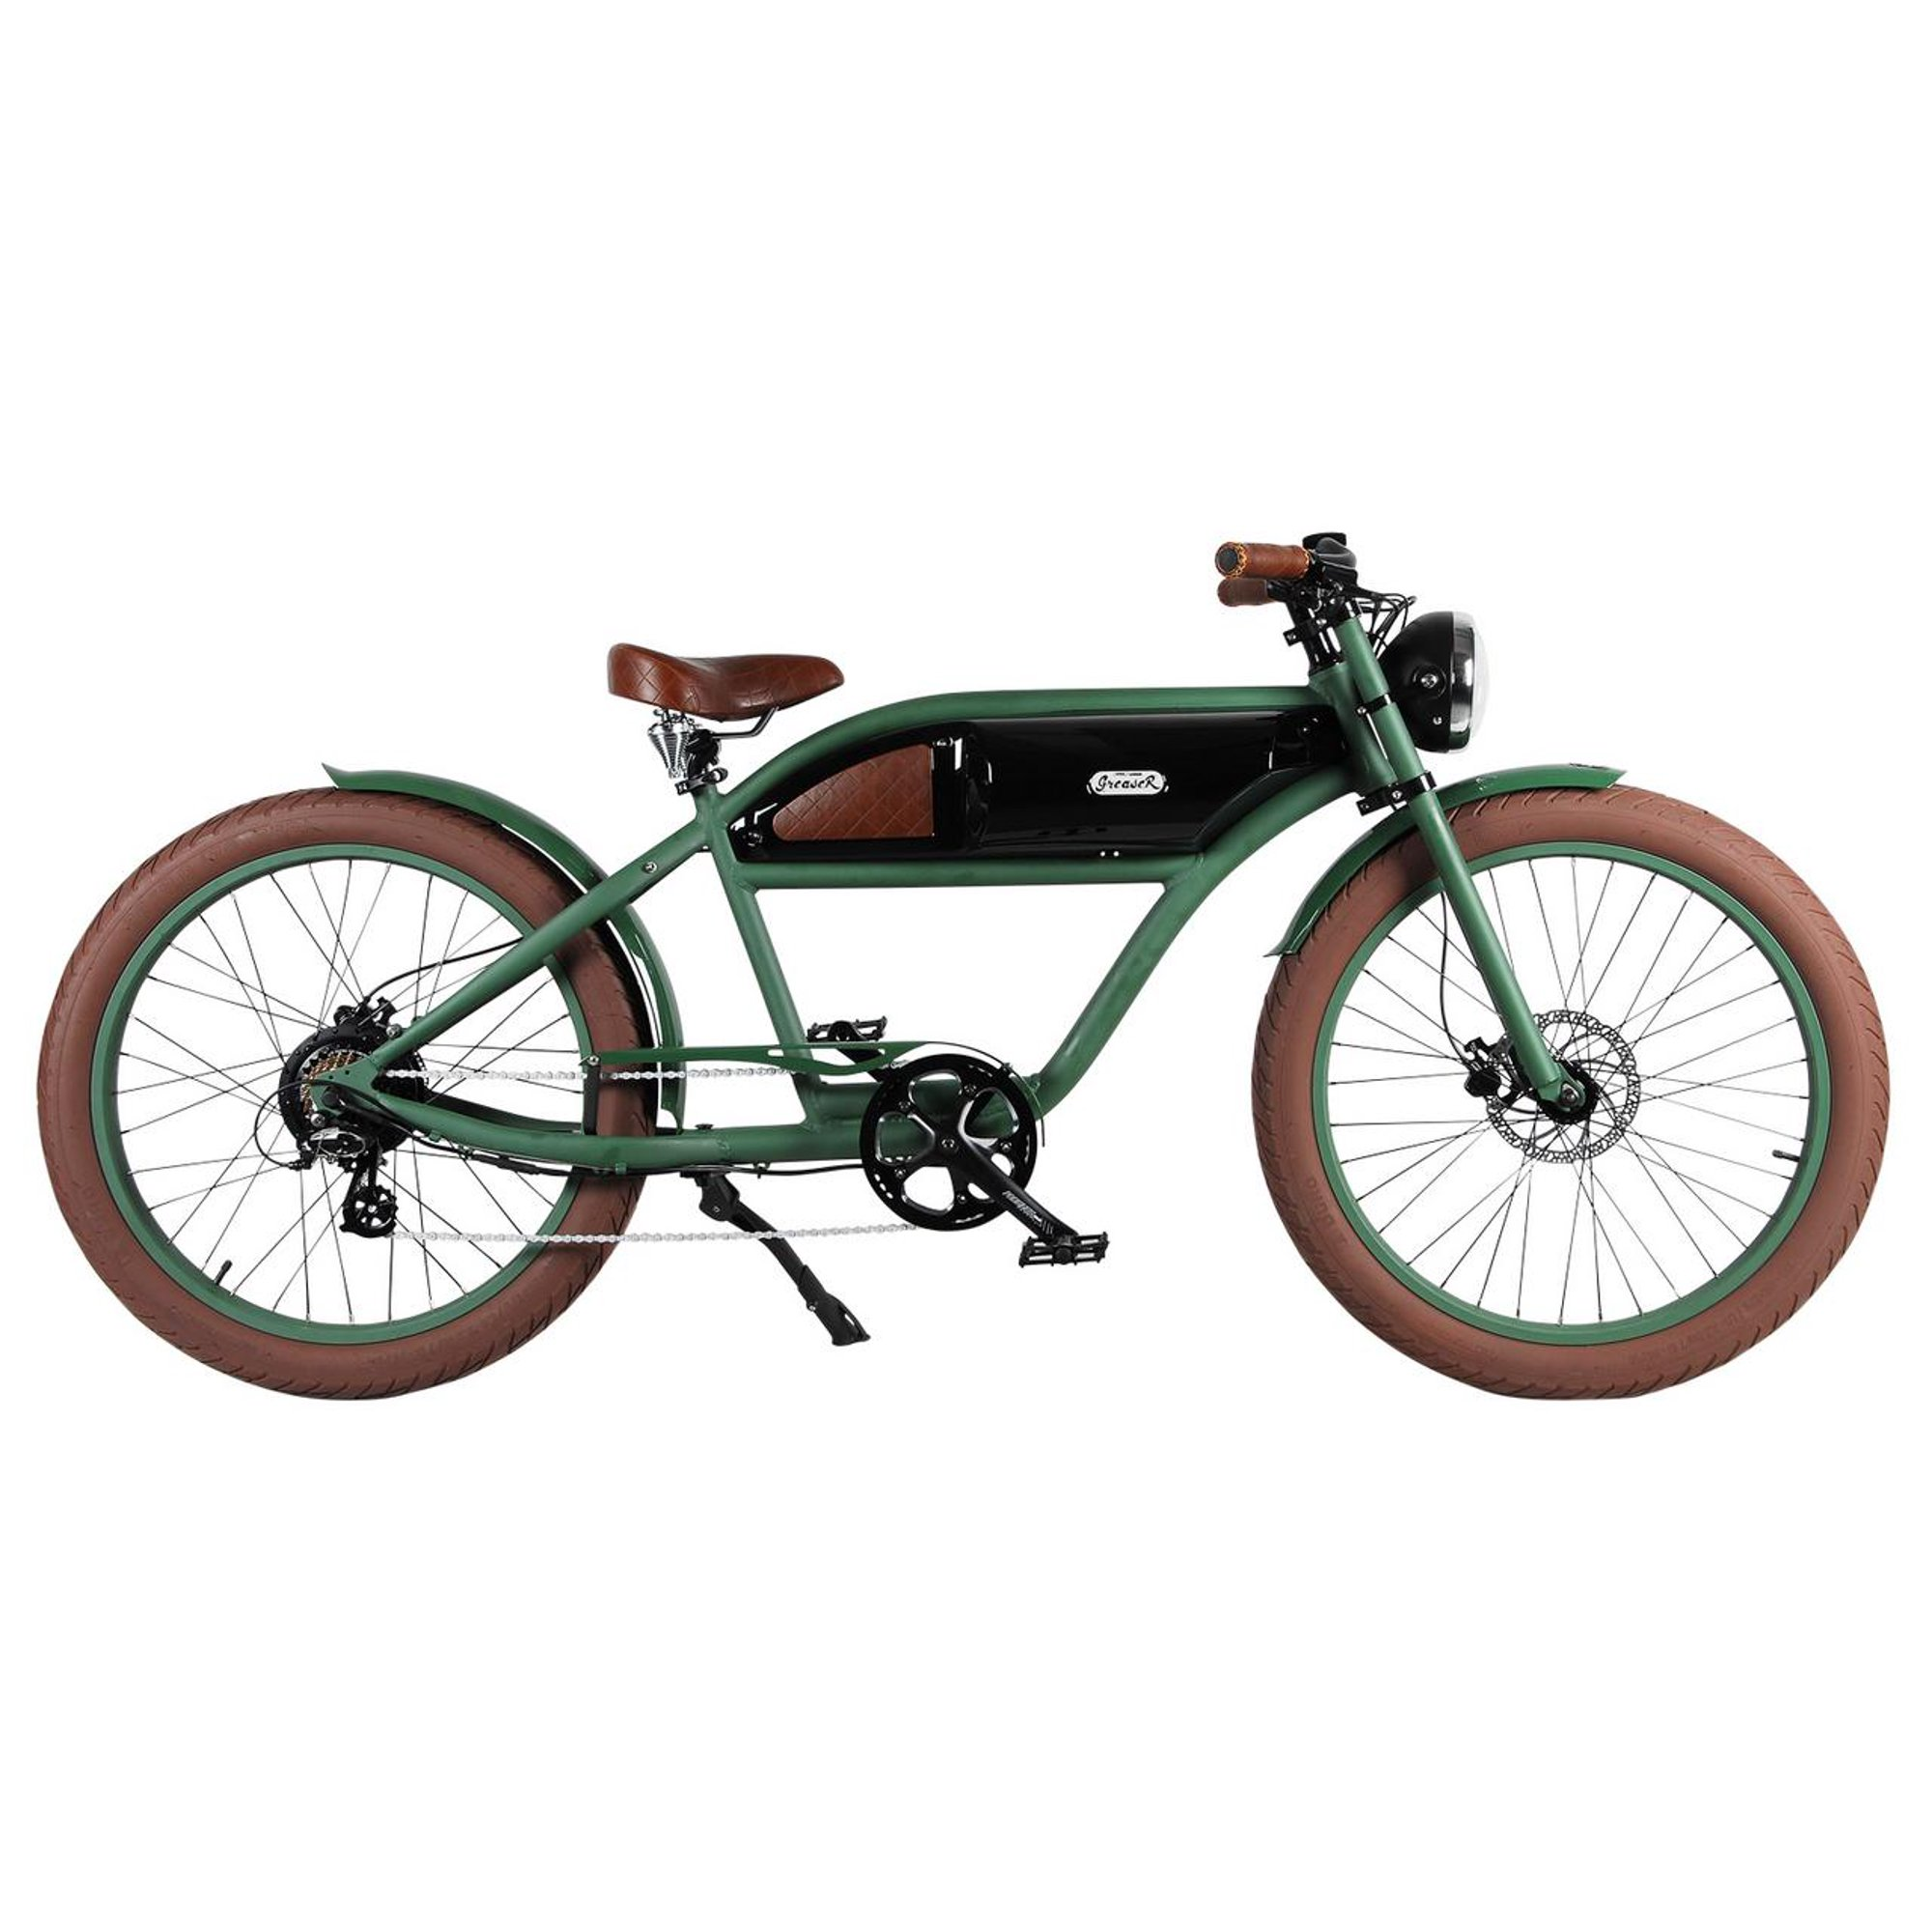 GREASER RETRO STYLE Electric BIKE - 26